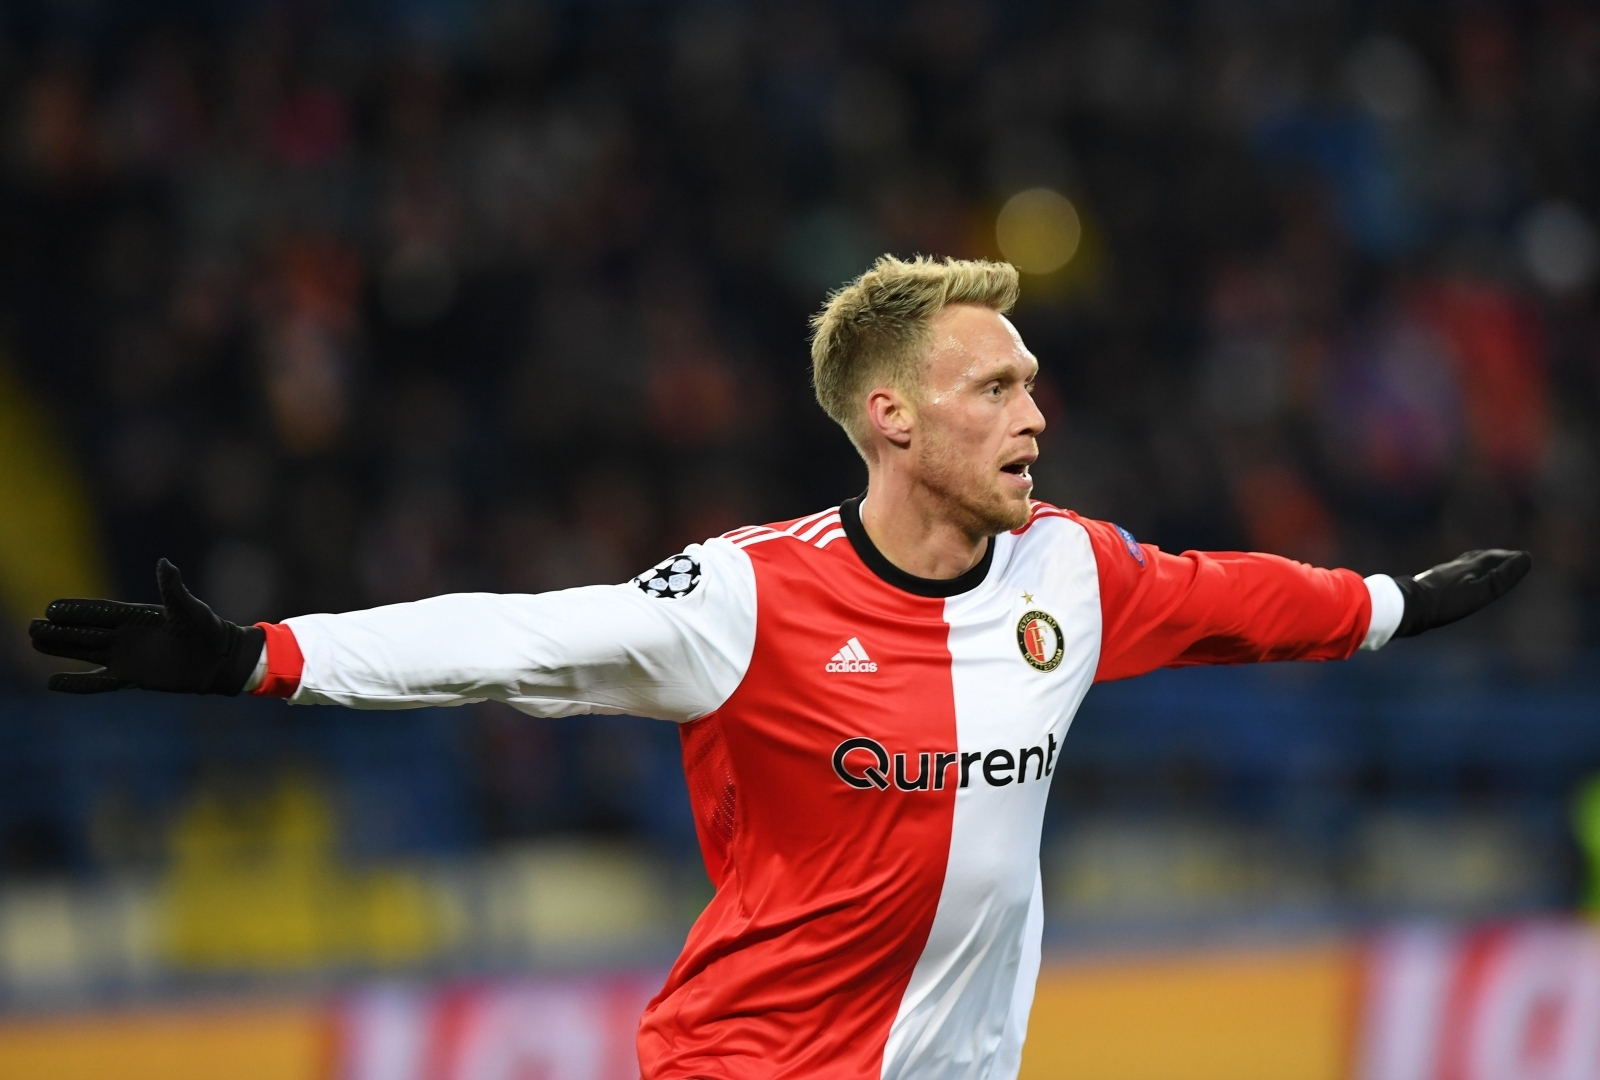 Feyenoord reject second bid for striker Nicolai Jorgensen